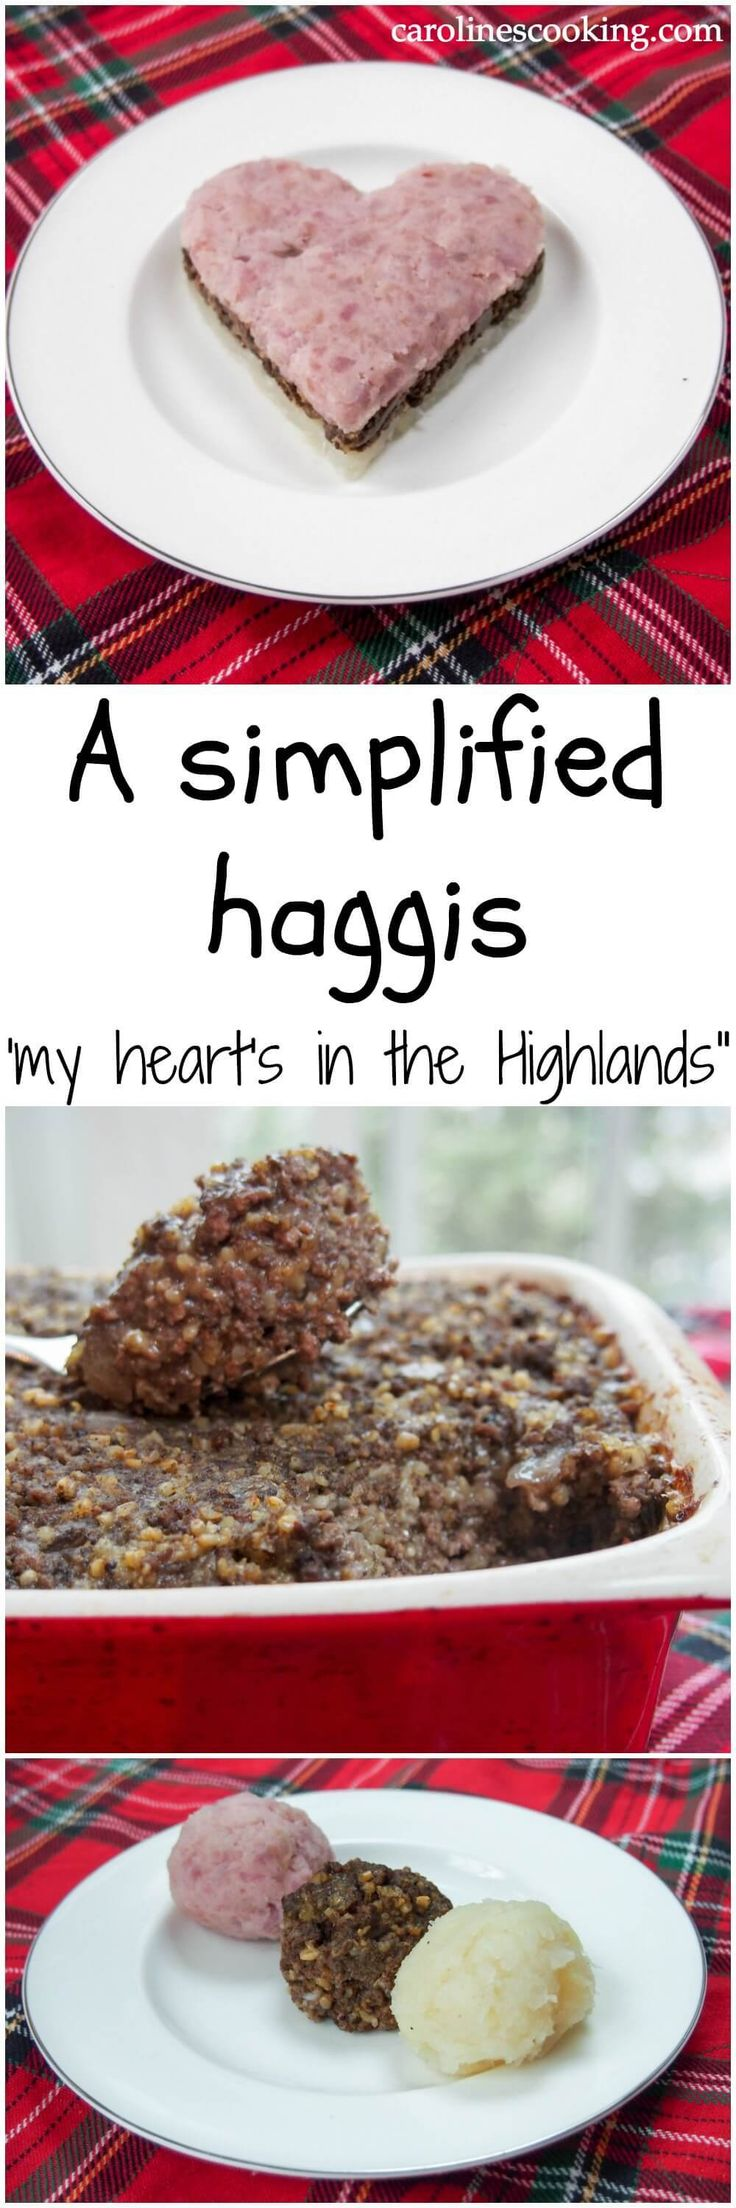 A simplified version of the traditional Scottish dish, haggis, using more commonly found ingredients but retaining the flavor and style of the original. perfect as part of a Burns Night feast, or just to try something new/take you back to Scotland. So tasty!